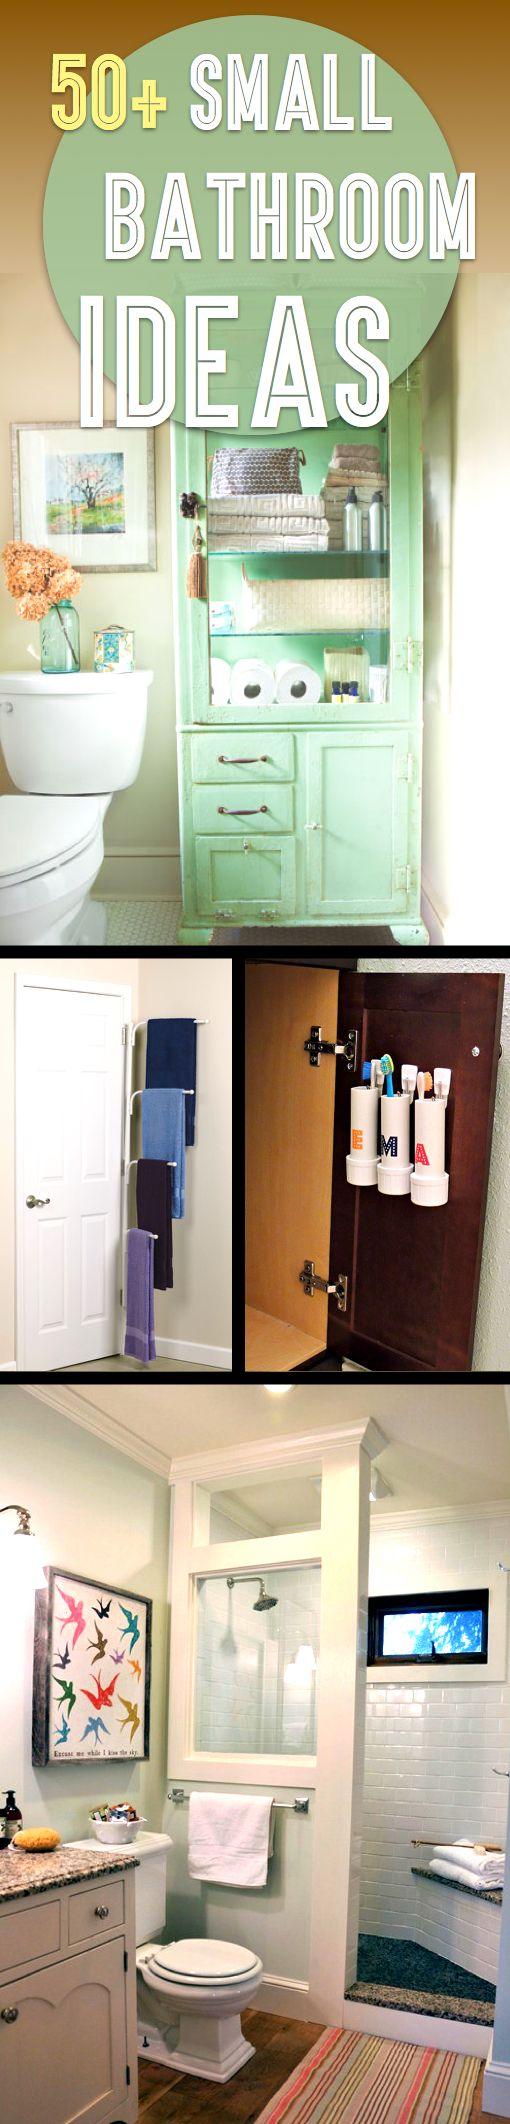 50 Small Bathroom Ideas That You Can Use To Maximize The Available Storage Space Home Is